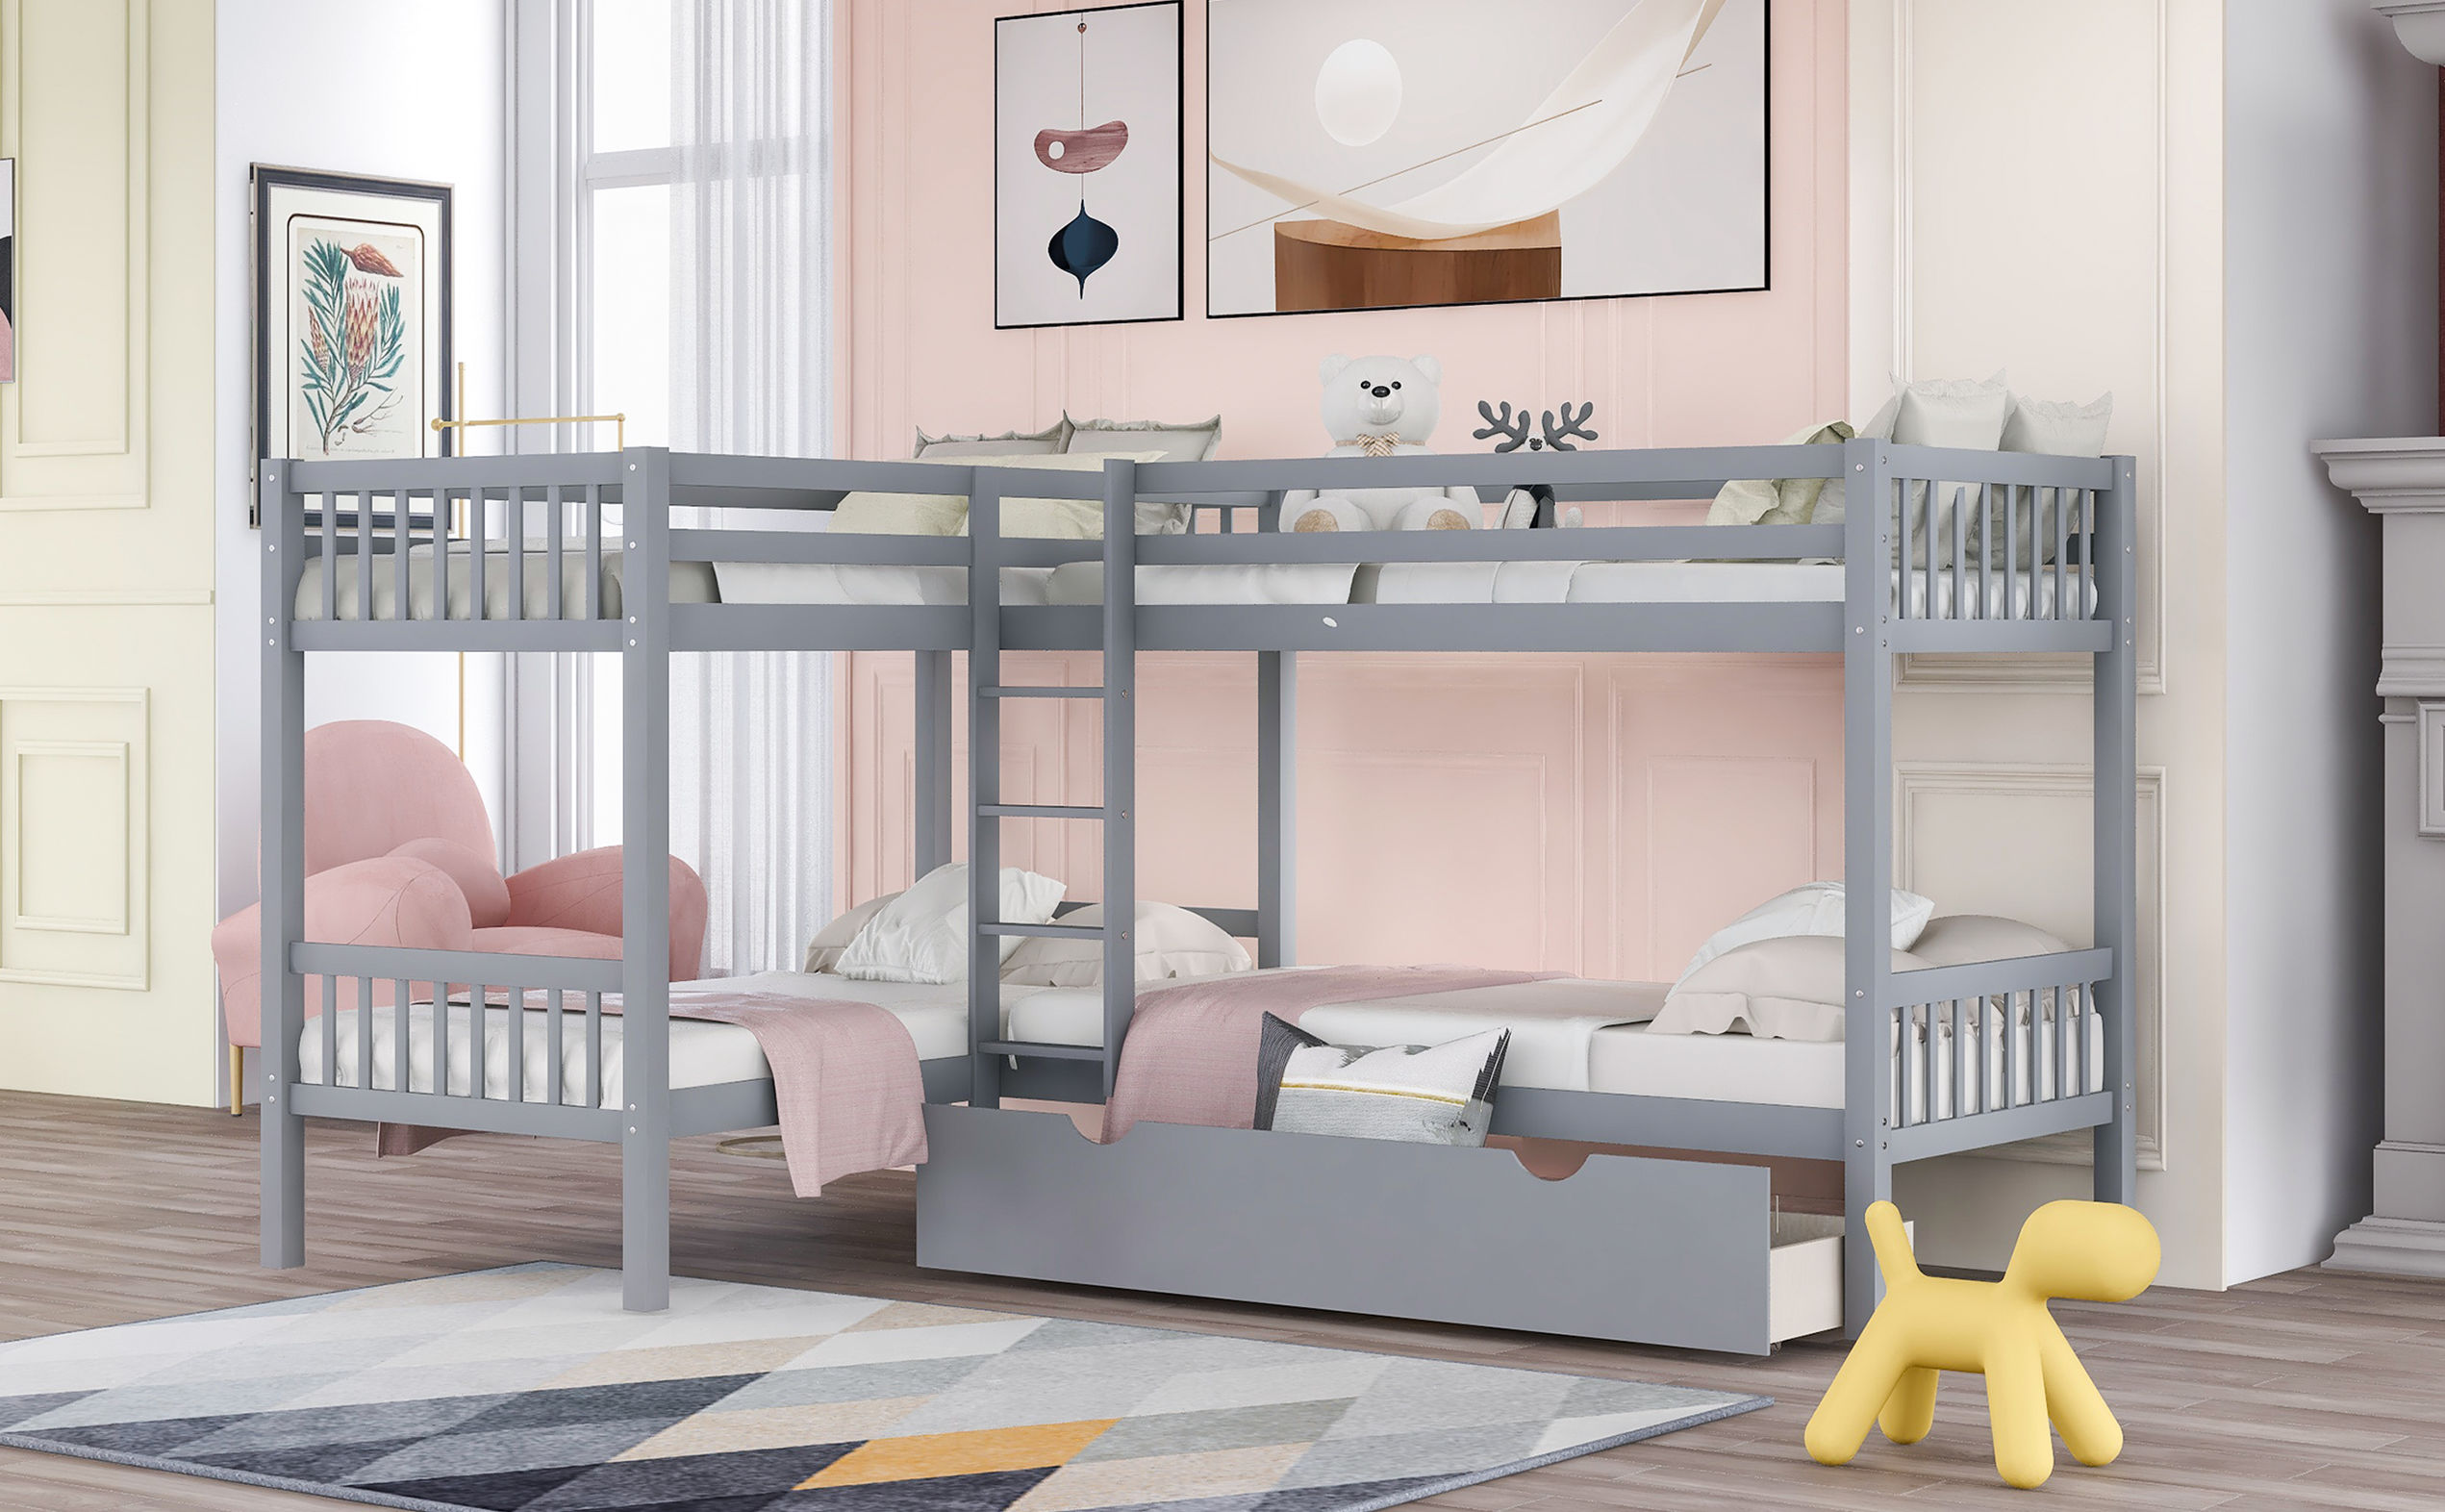 Quad Beds Bunk Beds Twin L Shaped Bunk Bed With Trundle And Guardrail No Spring Box Needed Solid Wood Bunk Beds Twin Over Full With Ladder And Guard Gray Walmart Com Walmart Com